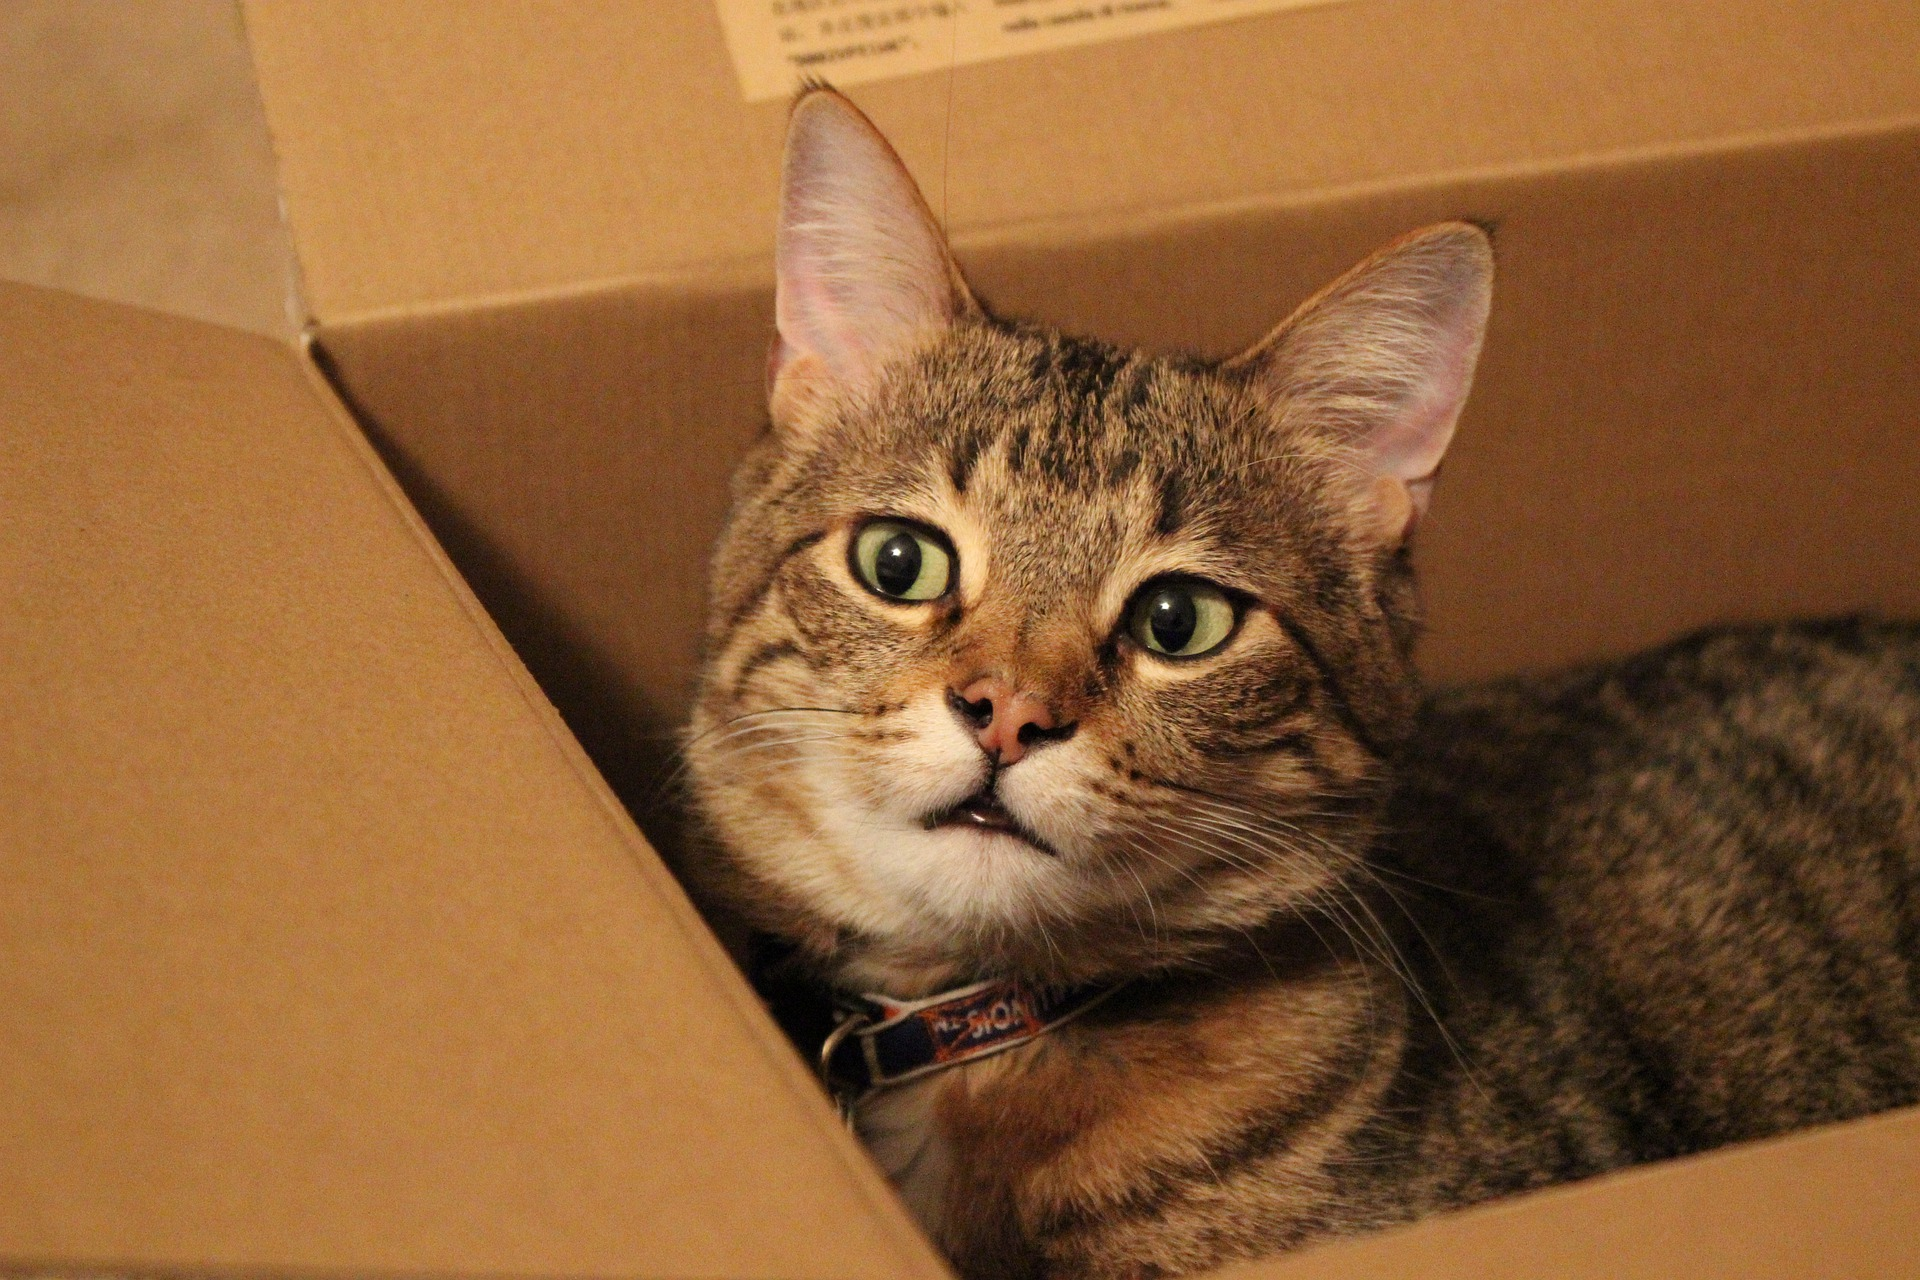 It's official: Cardboard boxes help alleviate cats' stress ...